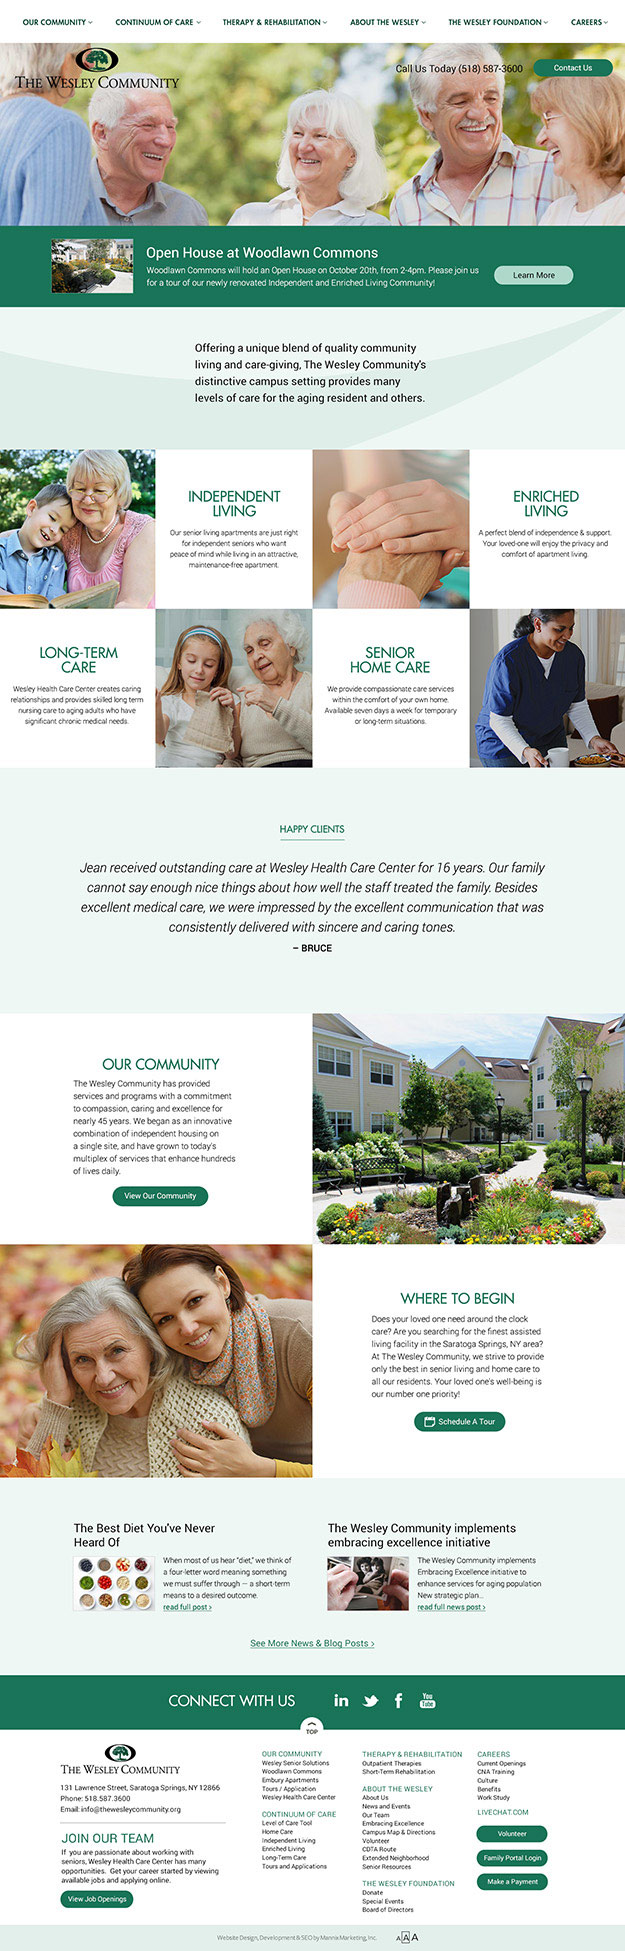 Homepage of The Wesley Community Senior Living Community